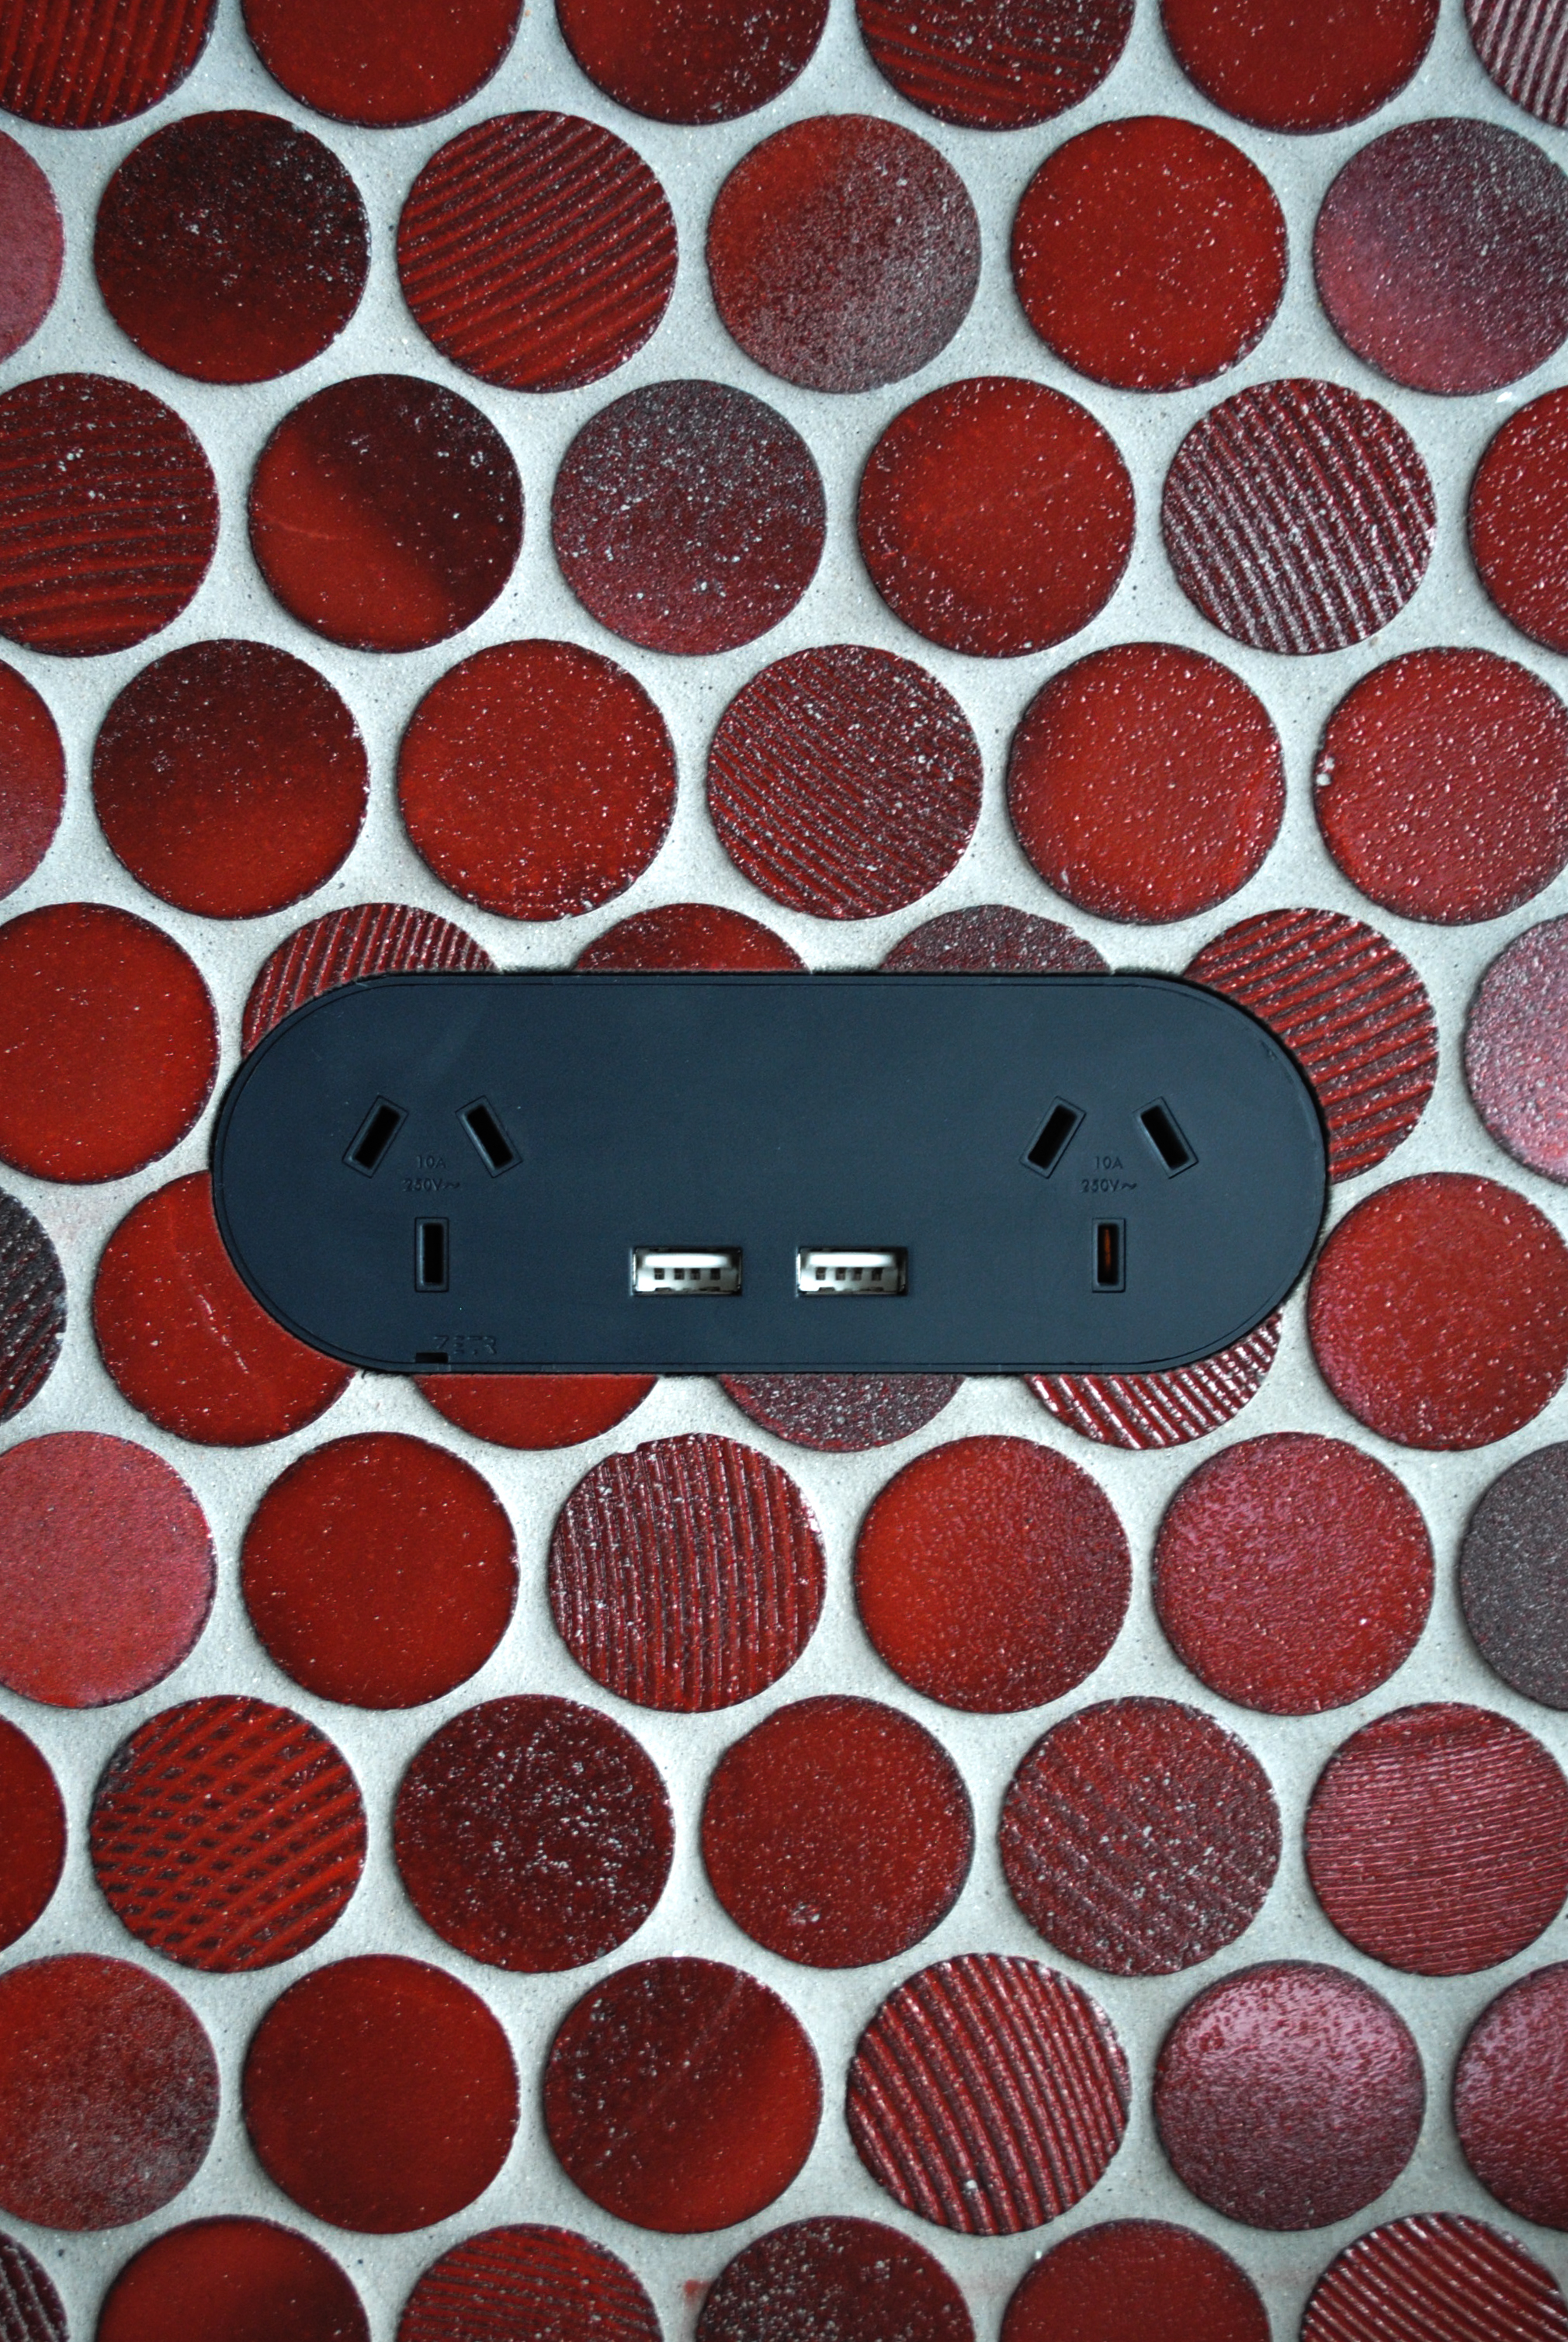 ZETR 13-O-USB -B | Double Outlet with USB x Surface Gallery Fusion Ruby Pennyround